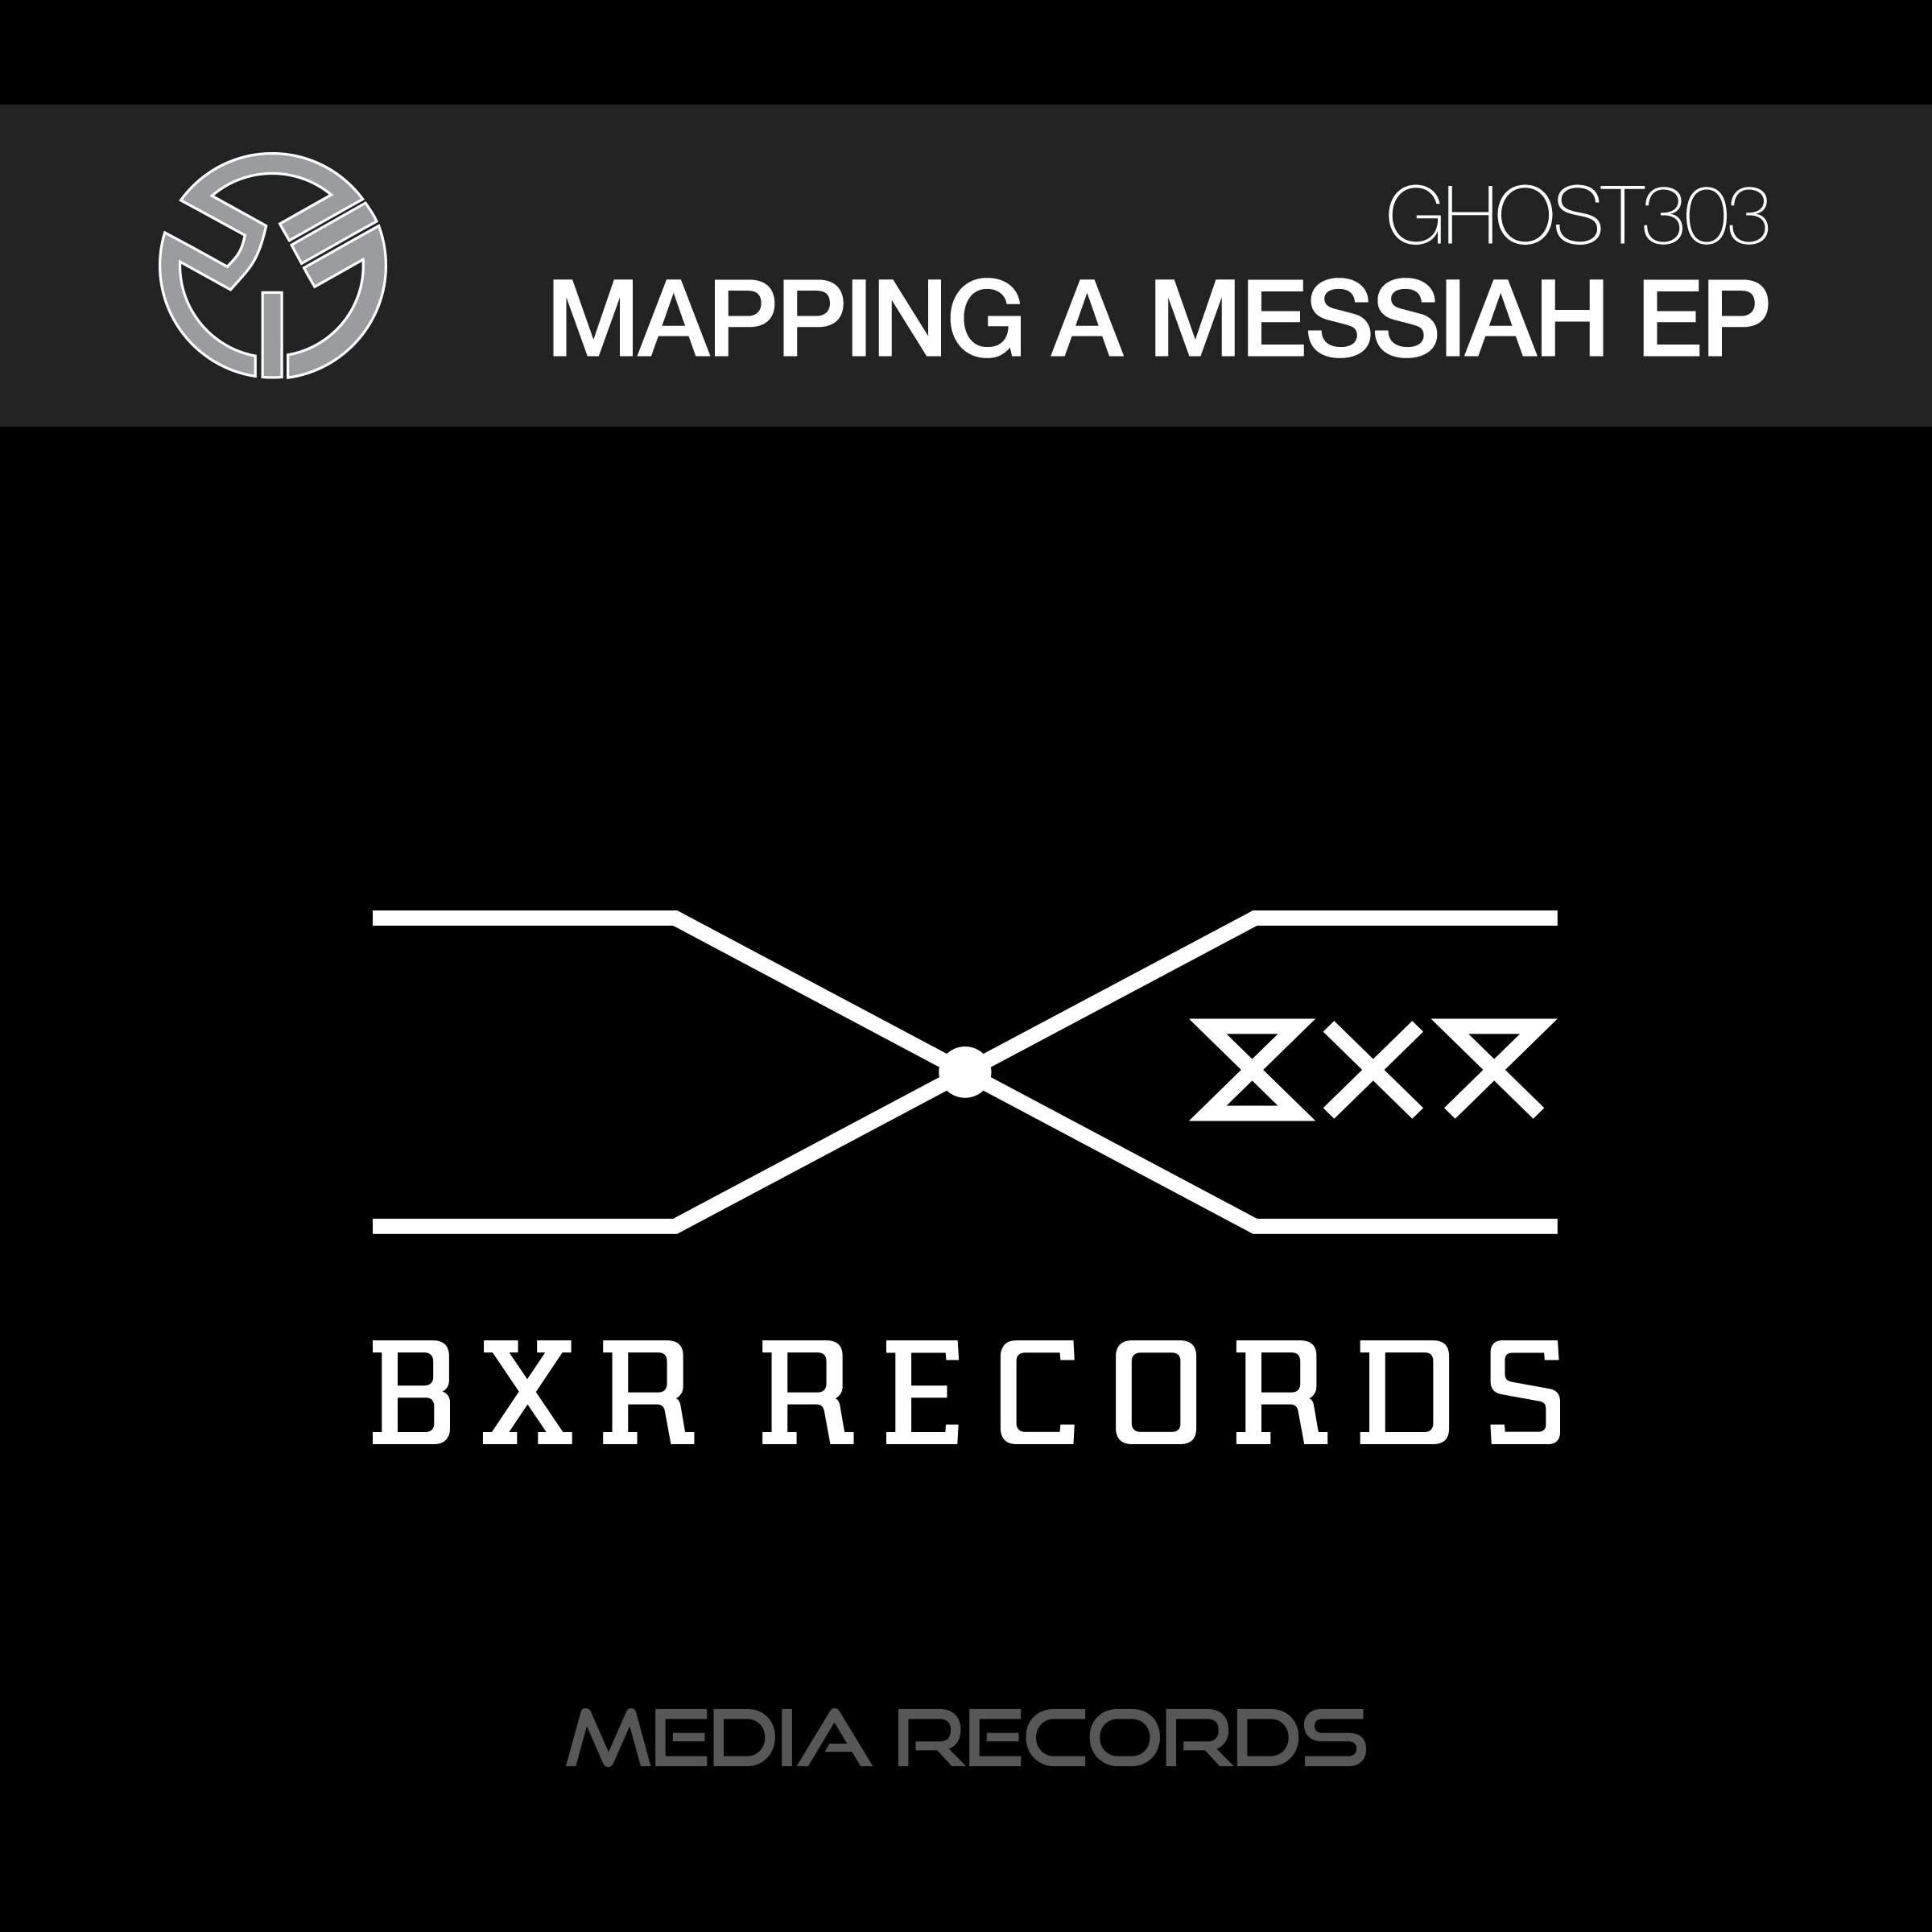 ghost303-mapping-a-messiah-ep-cover.jpg